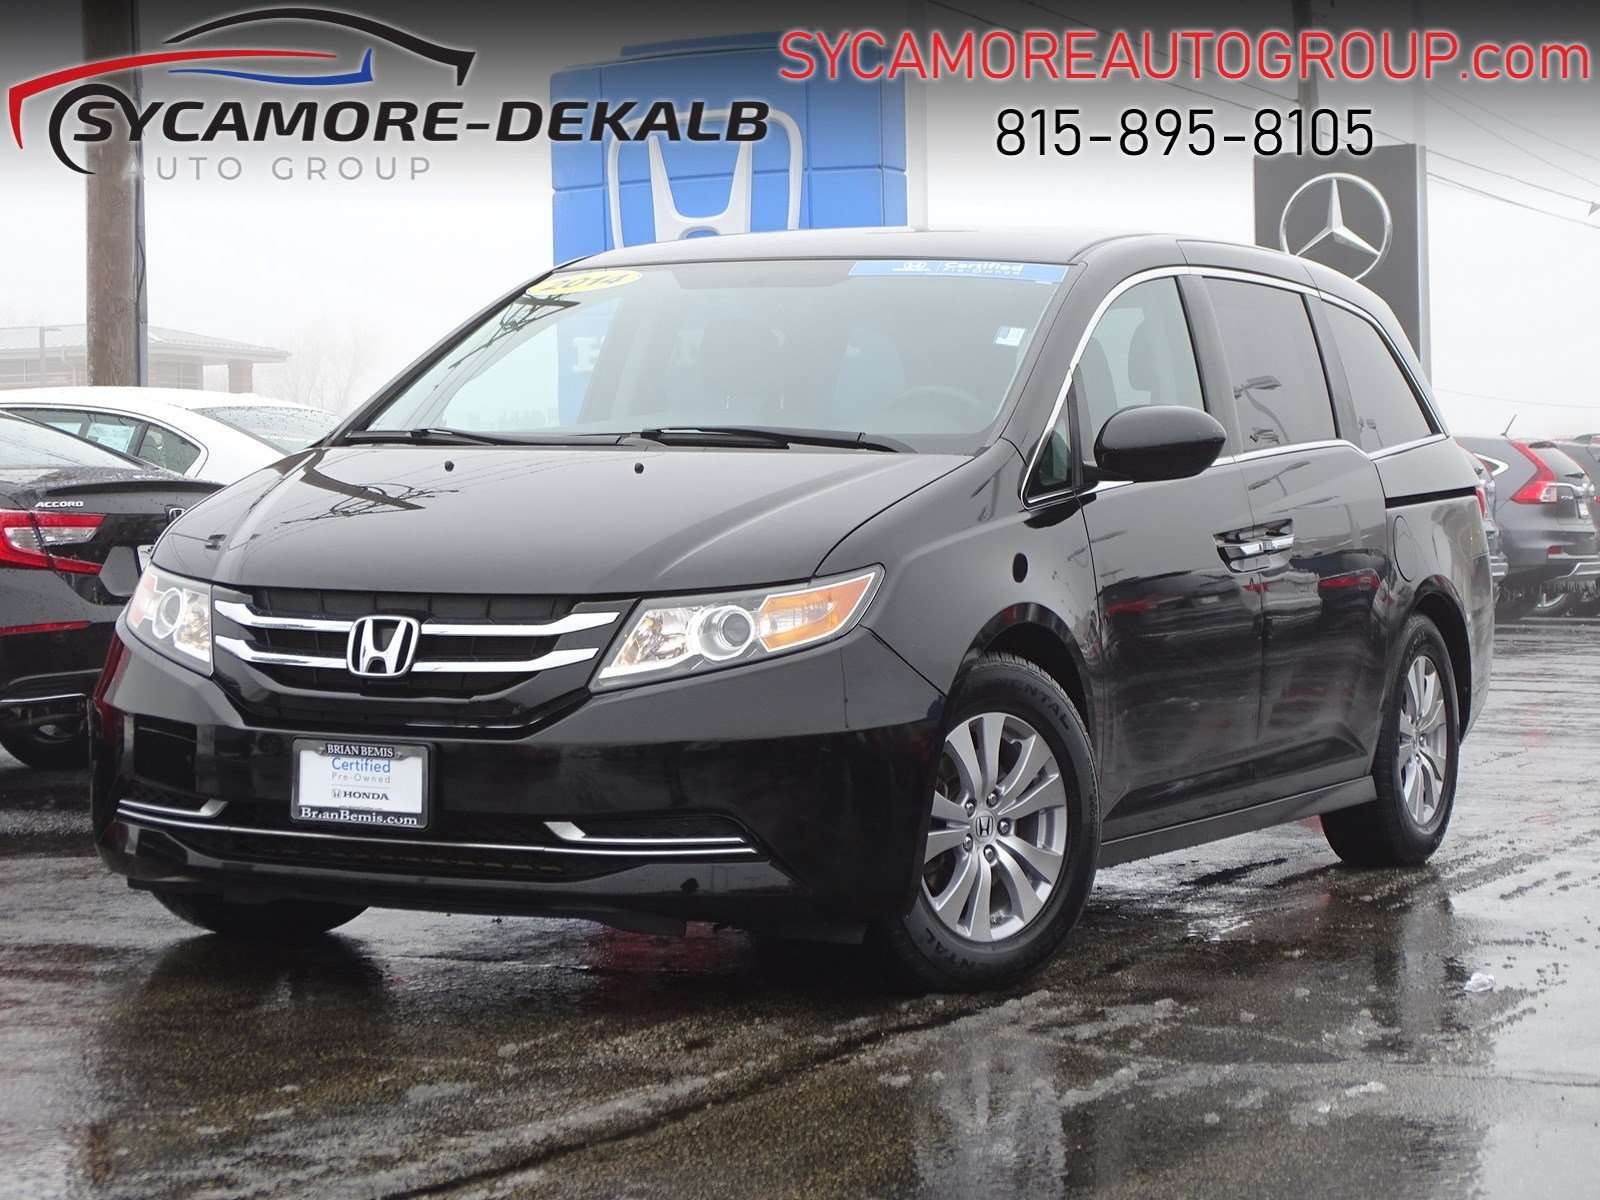 Certified Pre-Owned 2014 Honda Odyssey EX